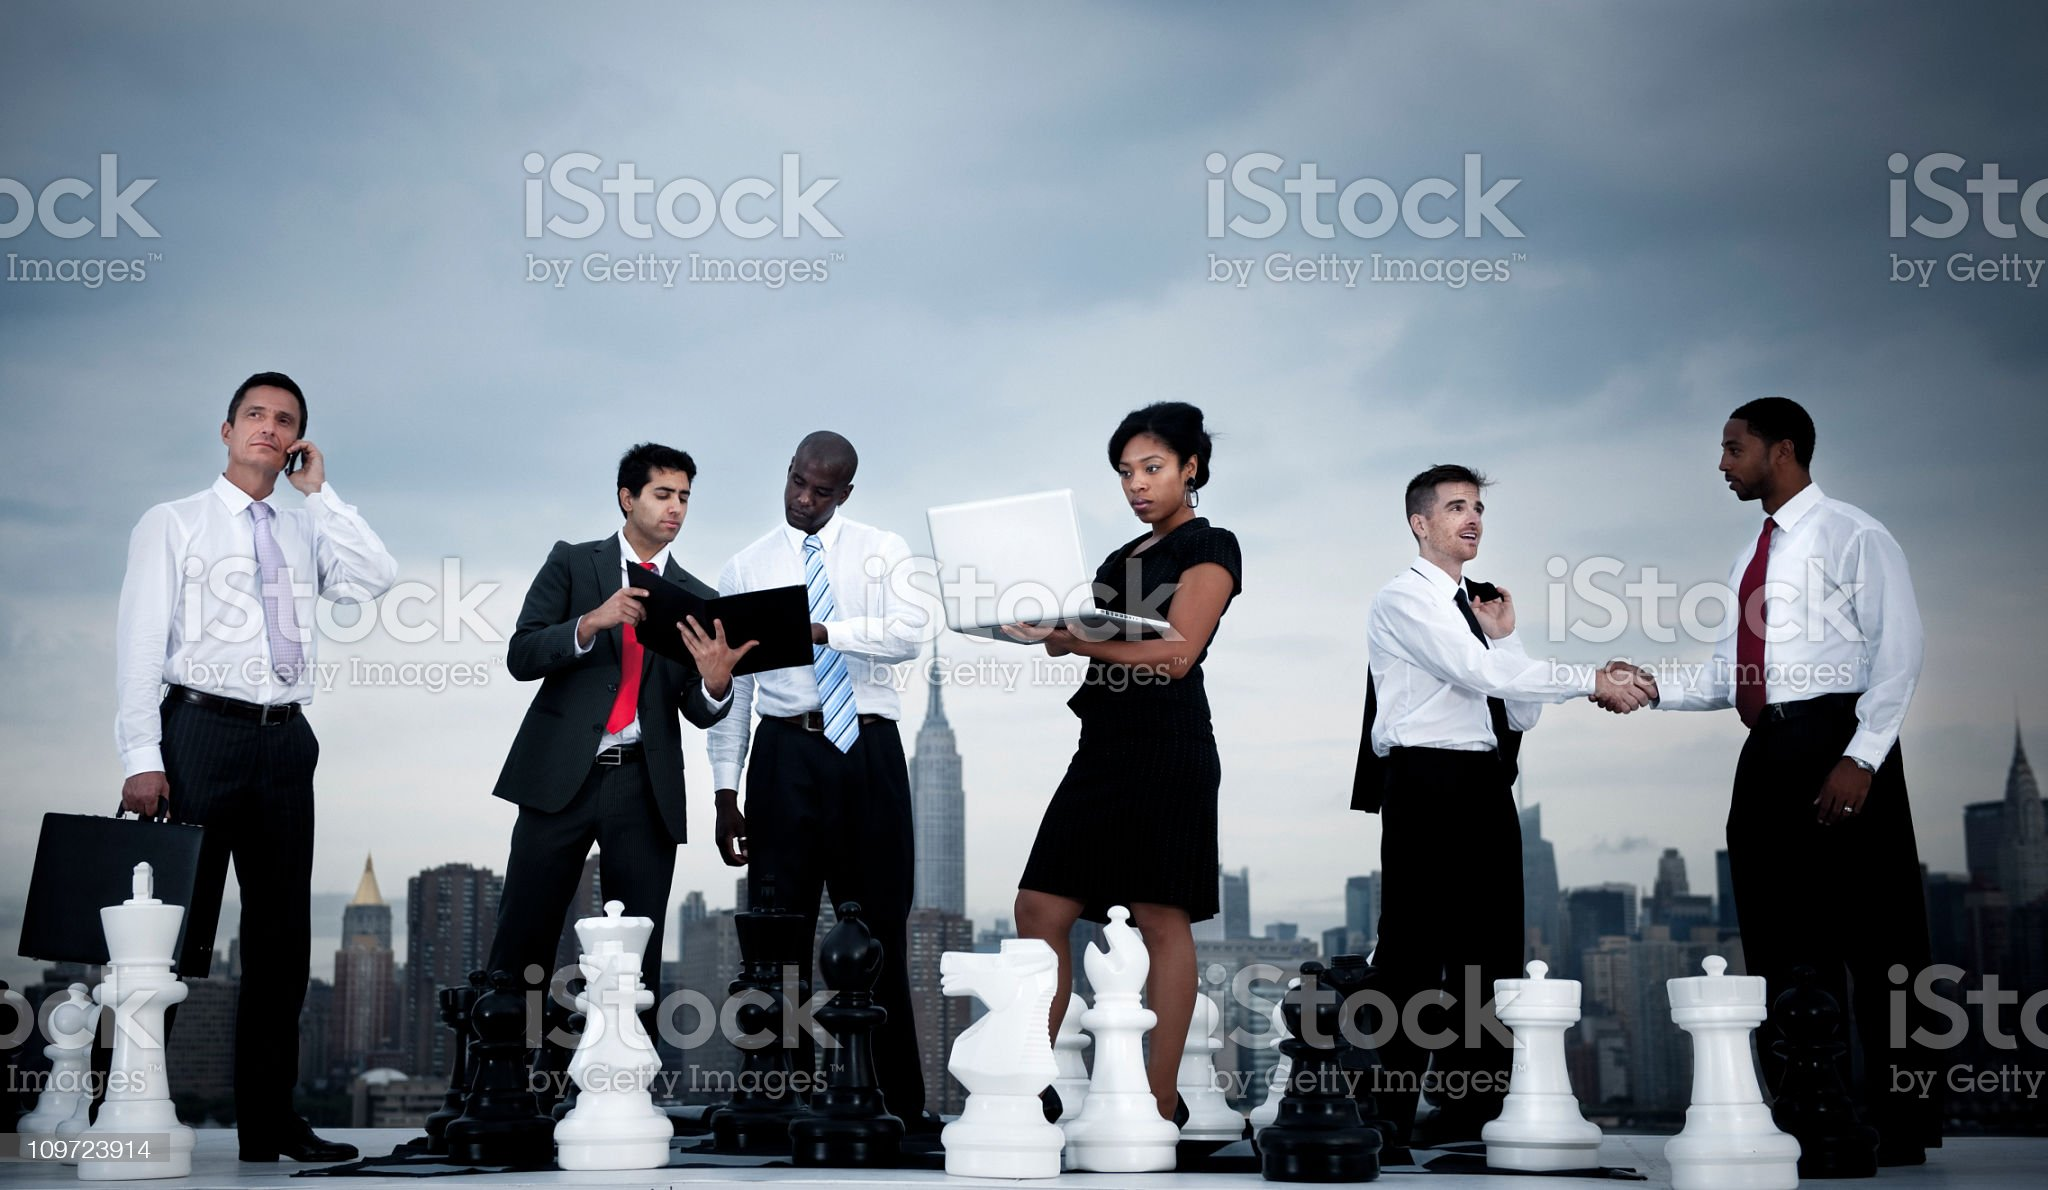 Businesspeople Chess concepts in the City royalty-free stock photo